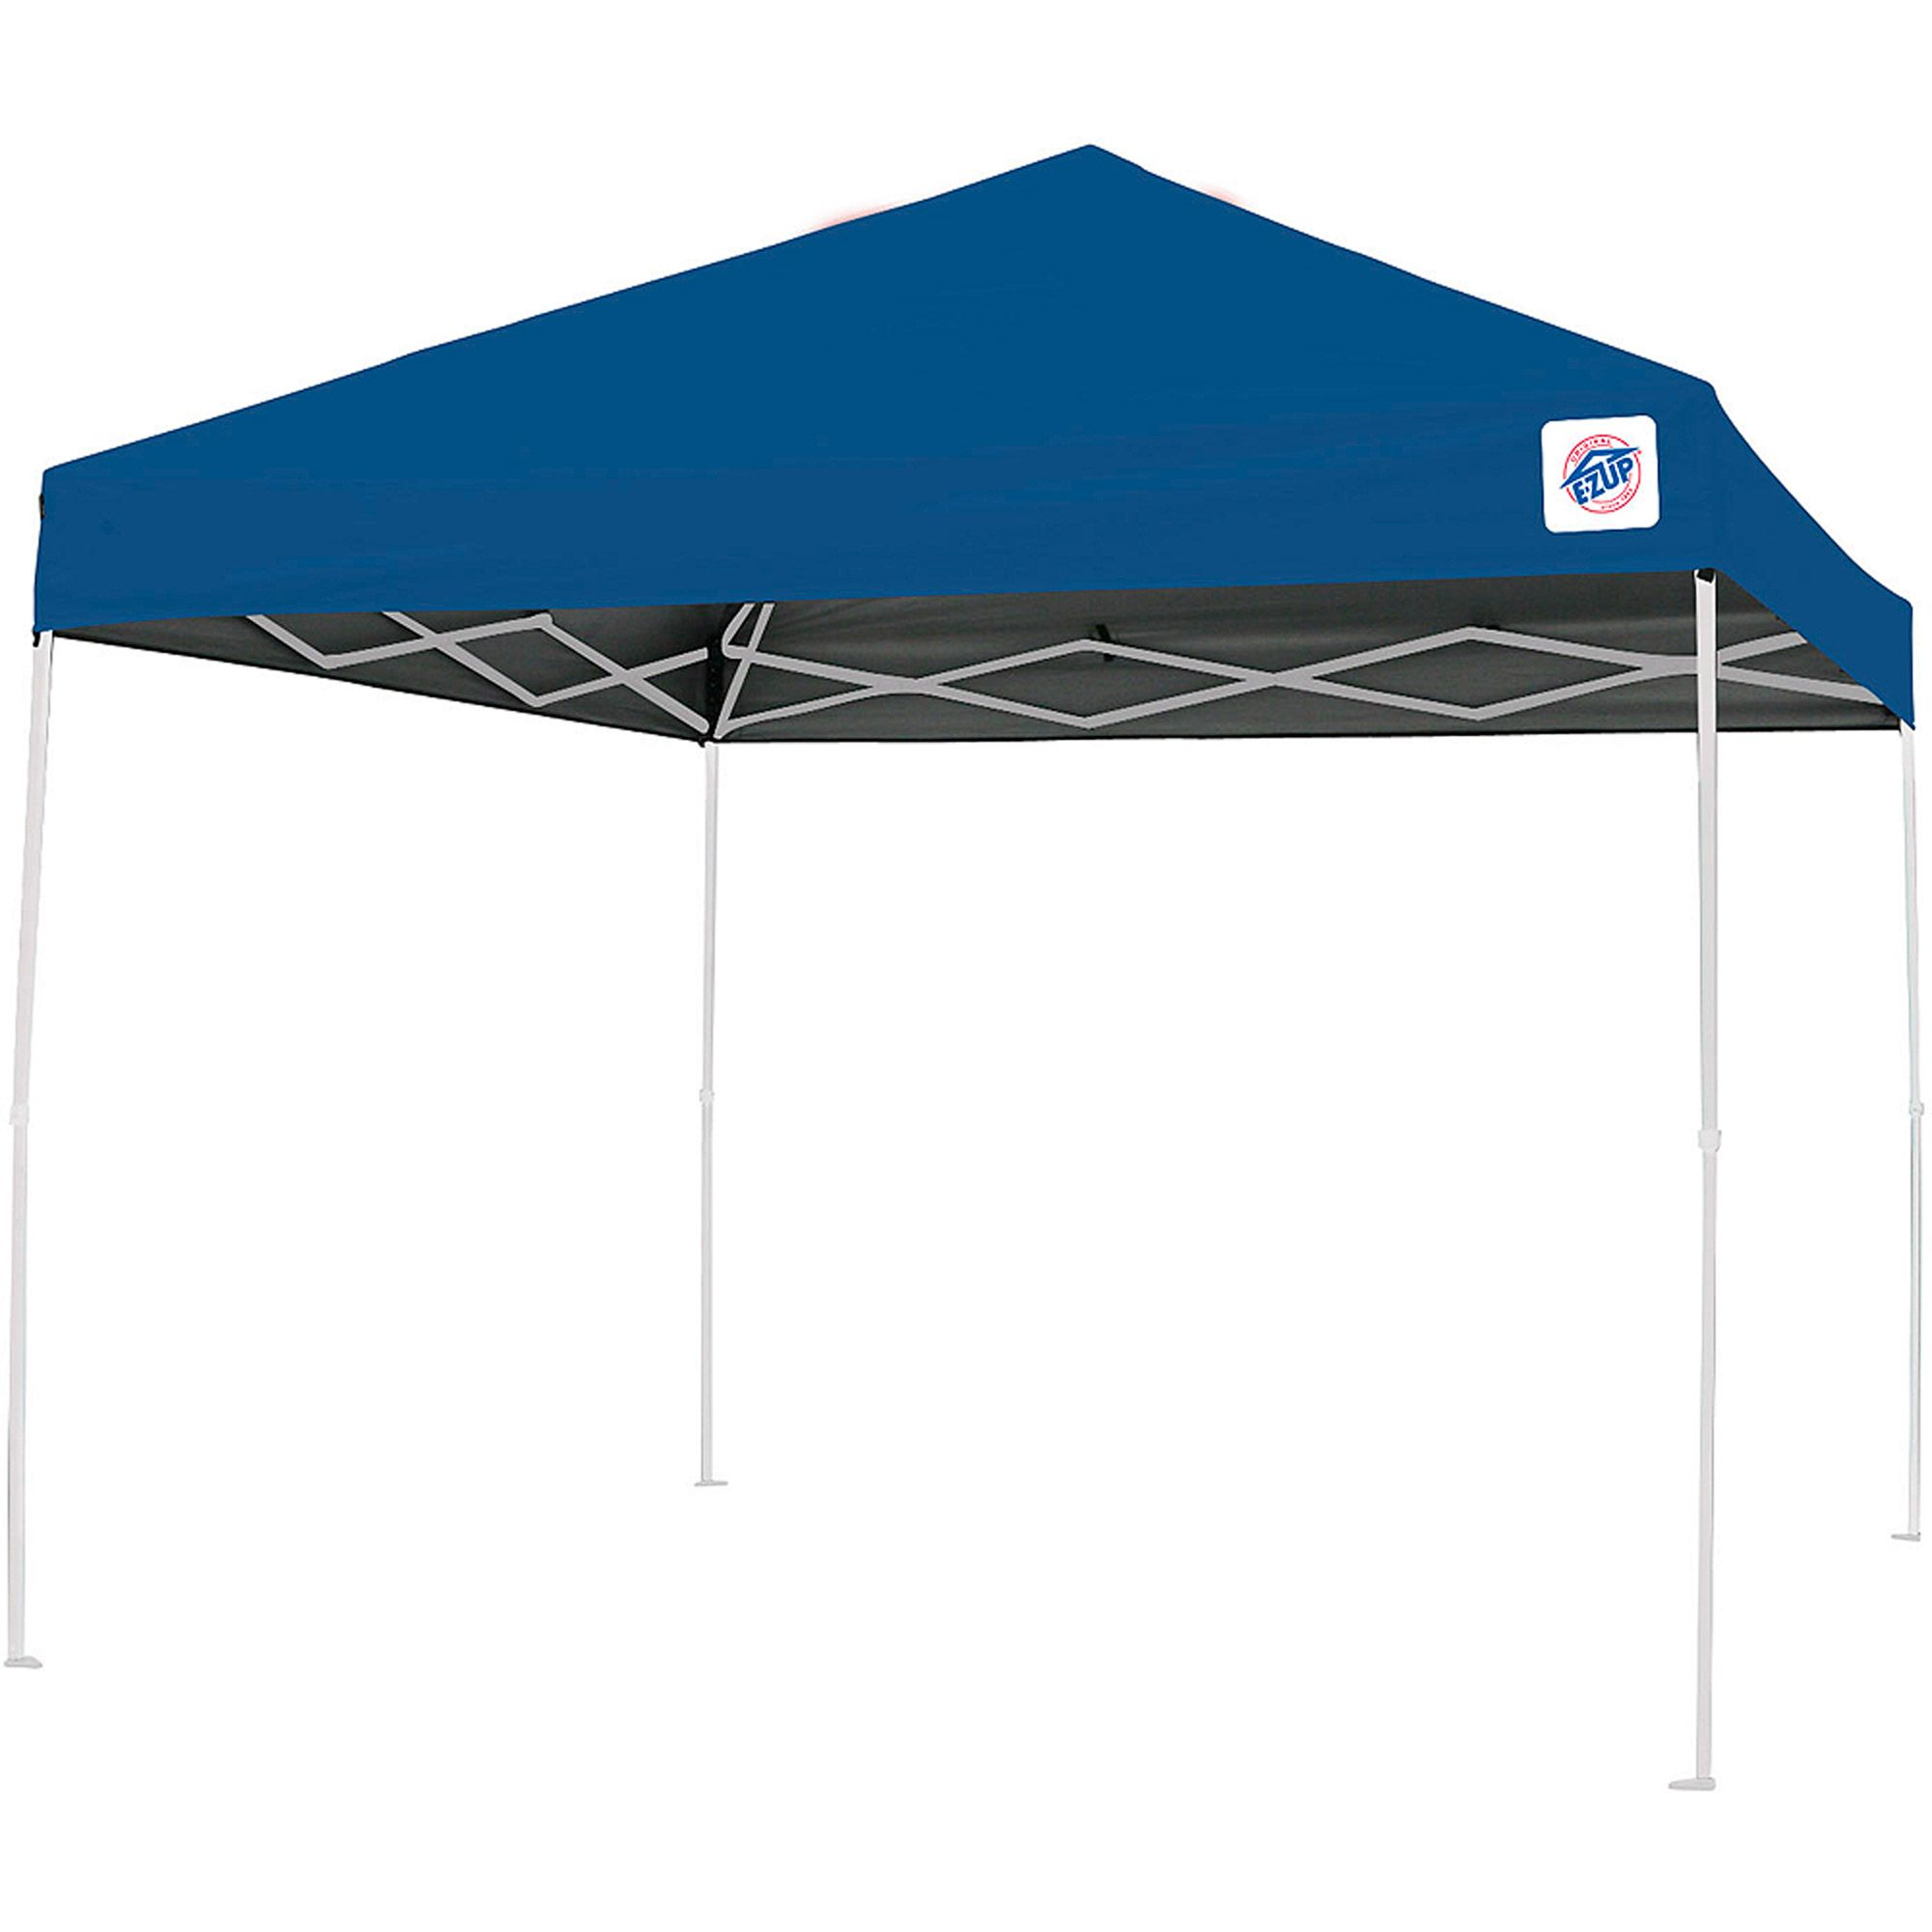 Ozark Trail 10x10 Slant Leg Instant Canopy Gazebo Shelter 100 Sq Ft Coverage Walmart Com In 2020 Instant Canopy Canopy Tent Outdoor Patio Decor